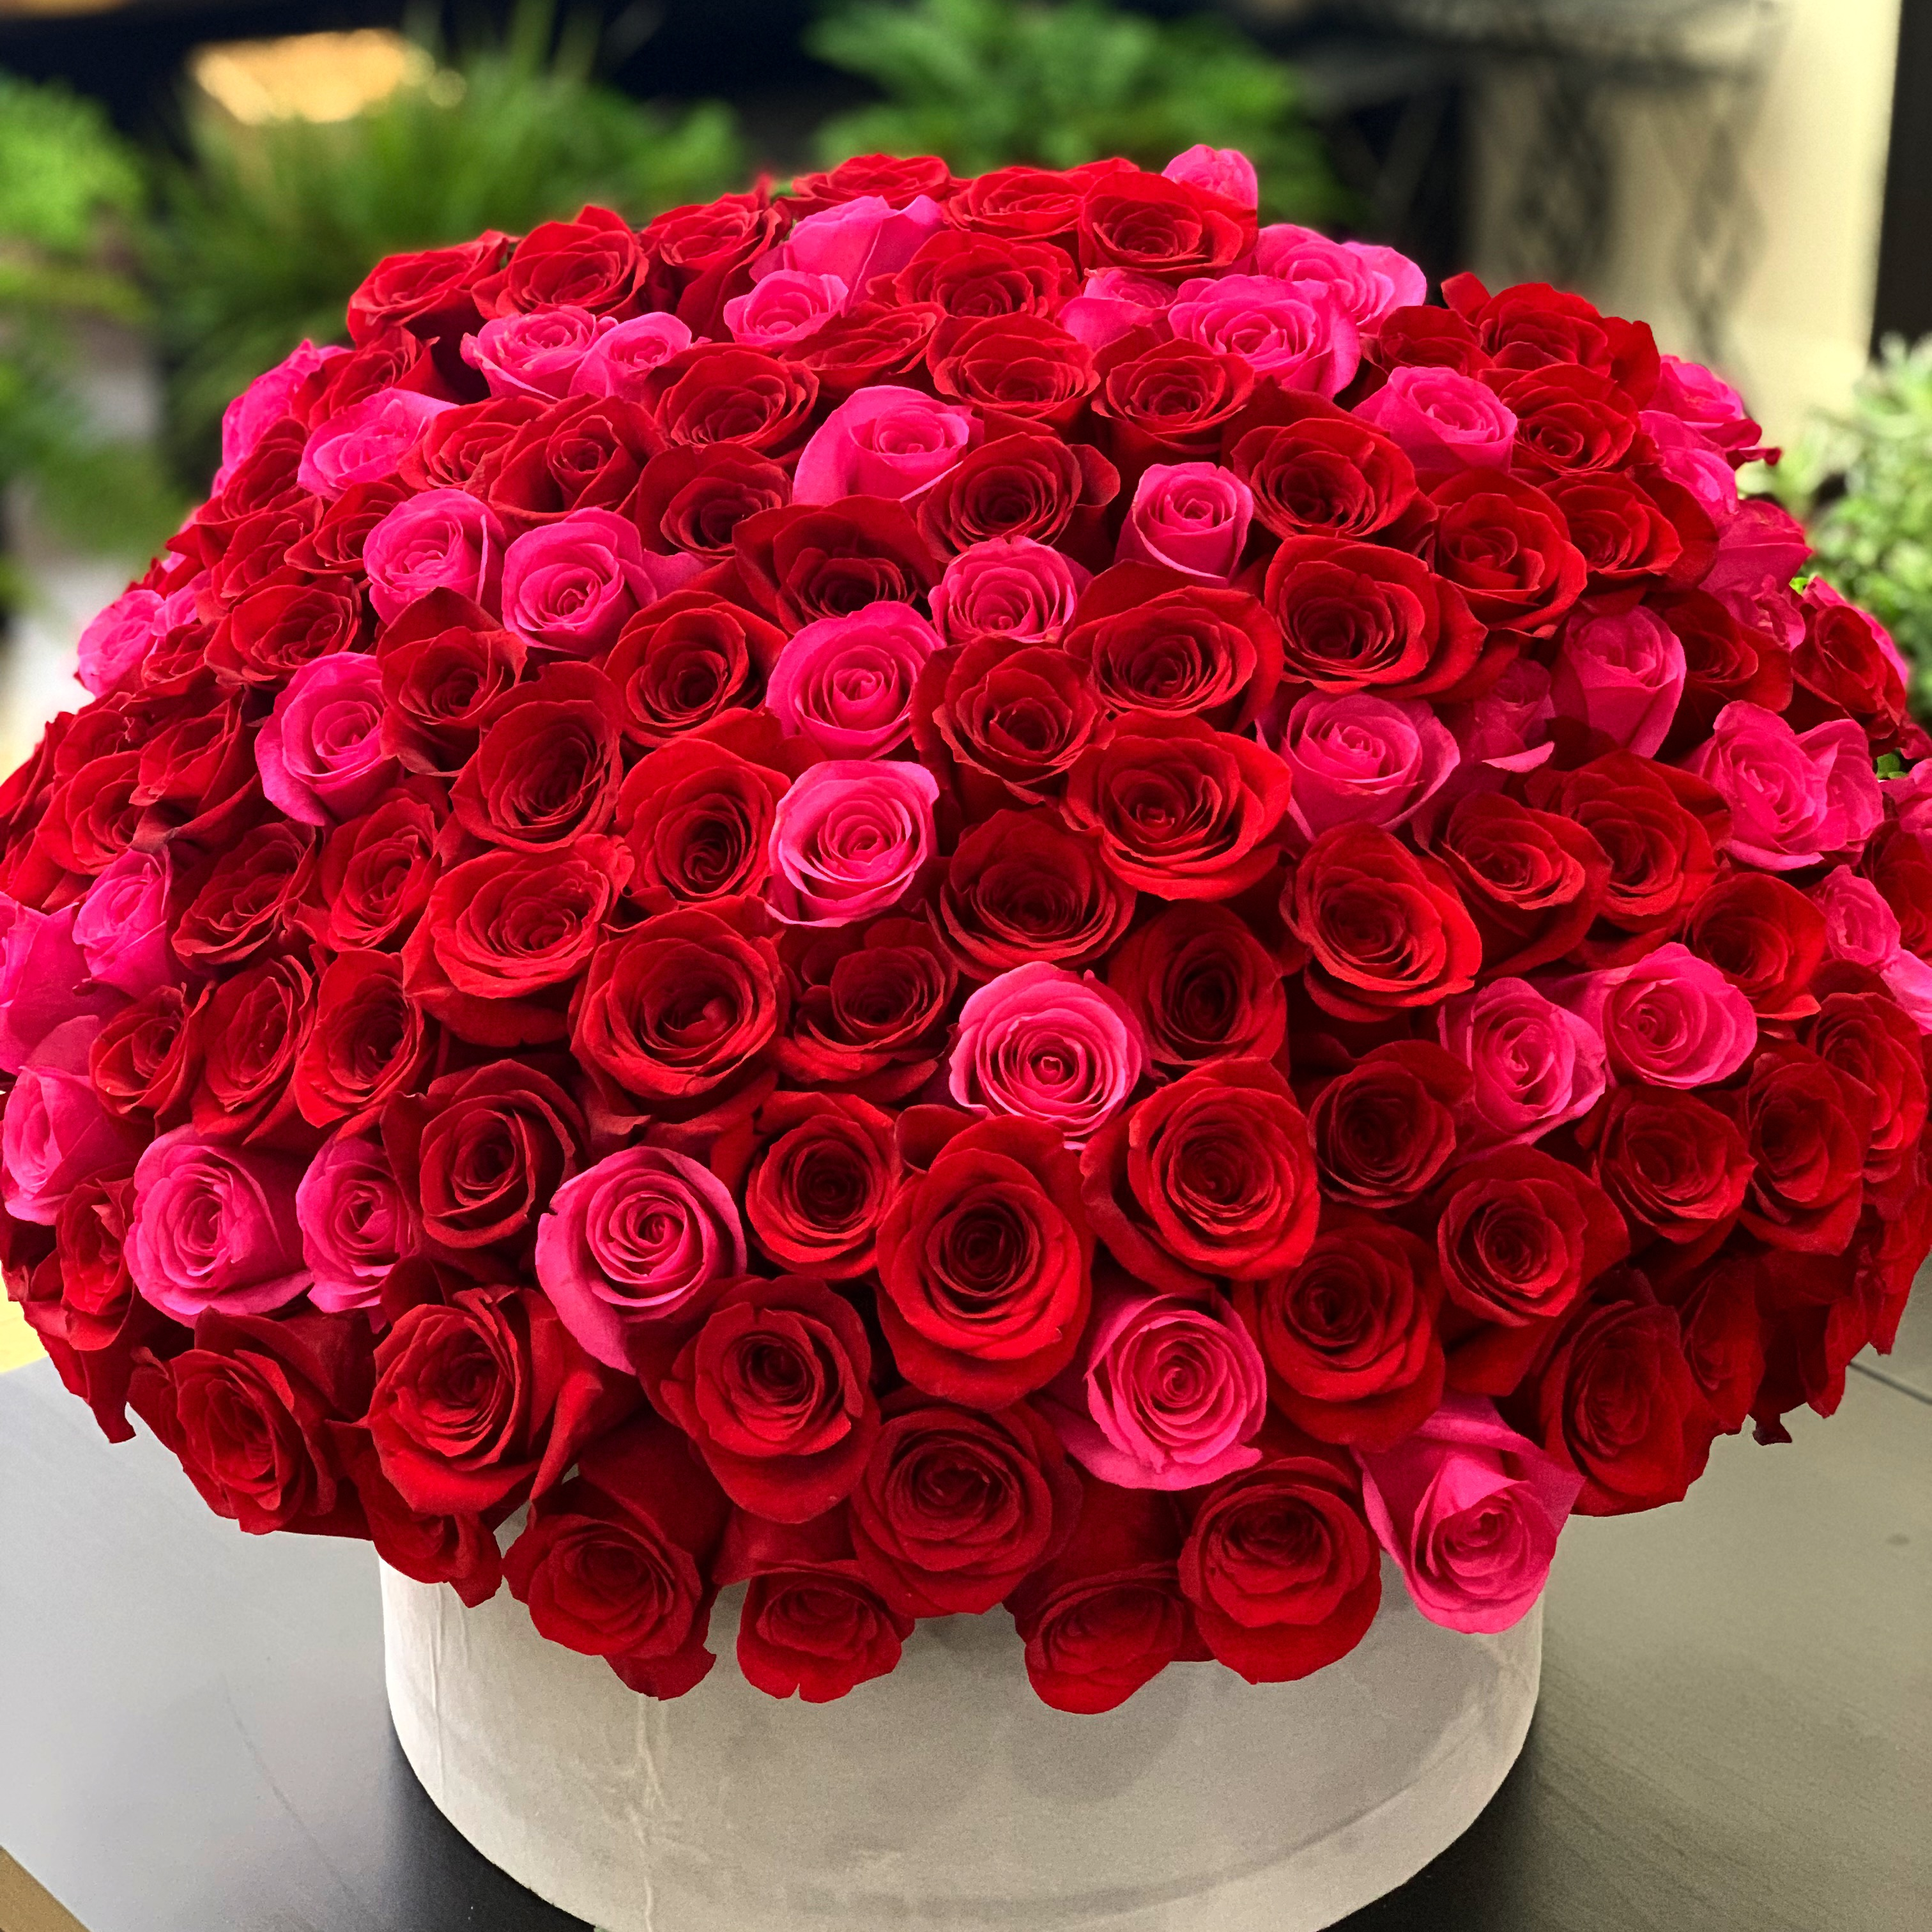 150 Red and Hot Pink Roses in a Box | Luxury Flowers Miami